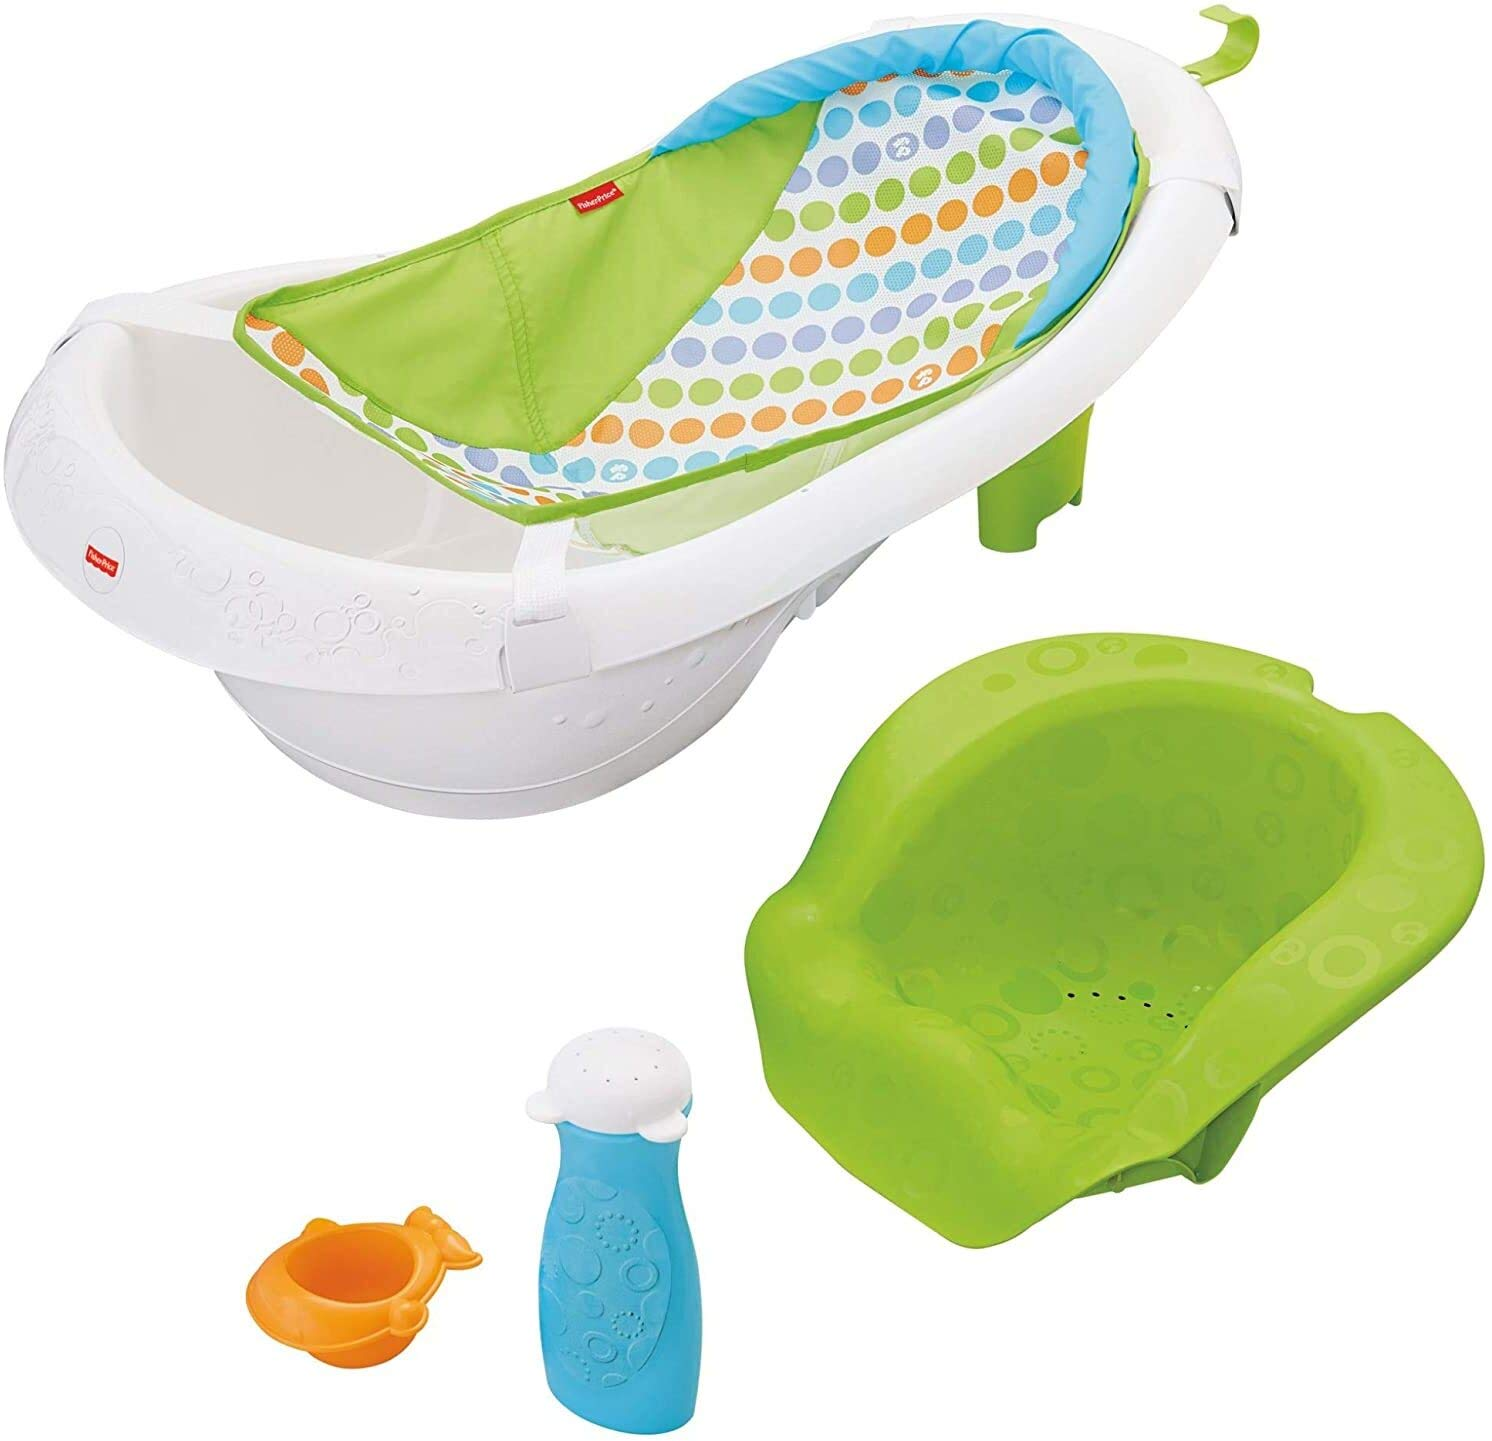 Fisher-Price 4-in-1 Sling Large Super intense SALE discharge sale 'n Pink FBM94 Seat Tub